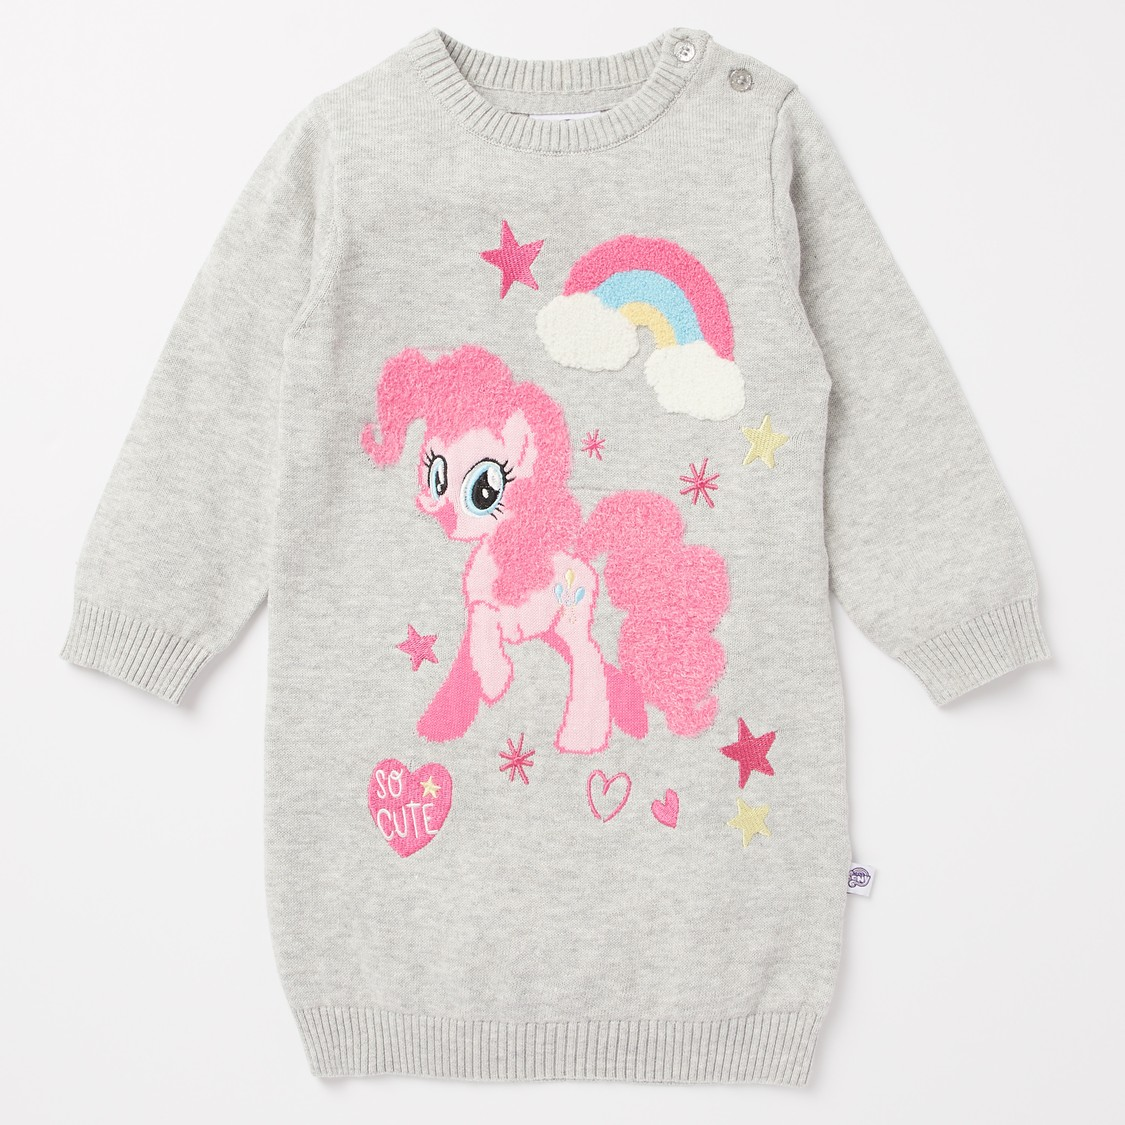 My Little Pony Textured Sweater Dress with Stockings Set